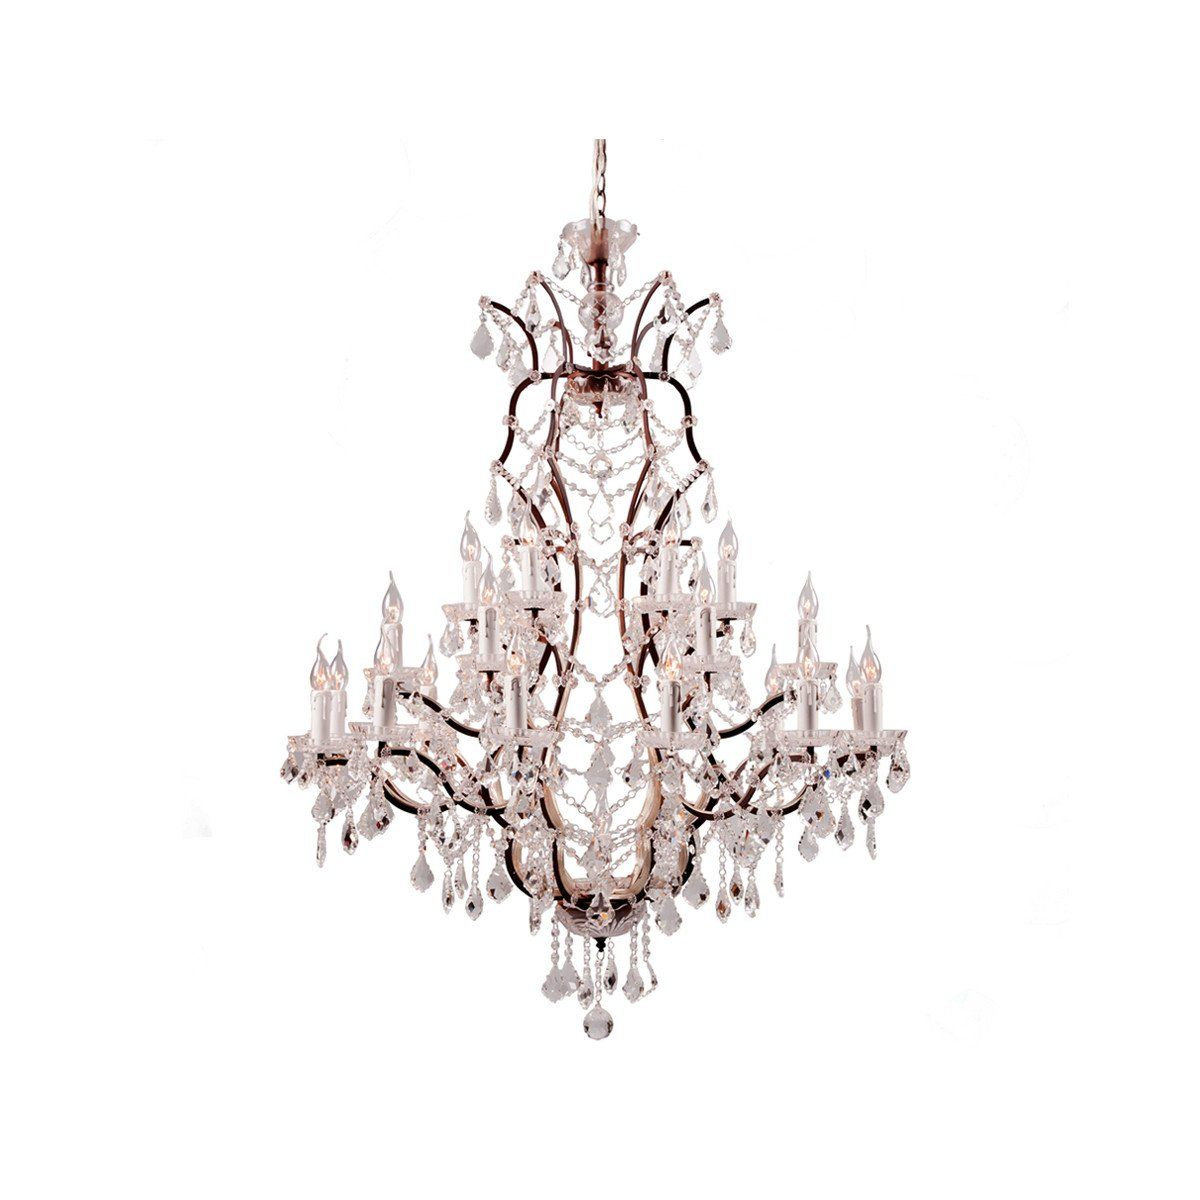 Winslet extra large chandelier rust large chandeliers rust and brisbane arubaitofo Gallery